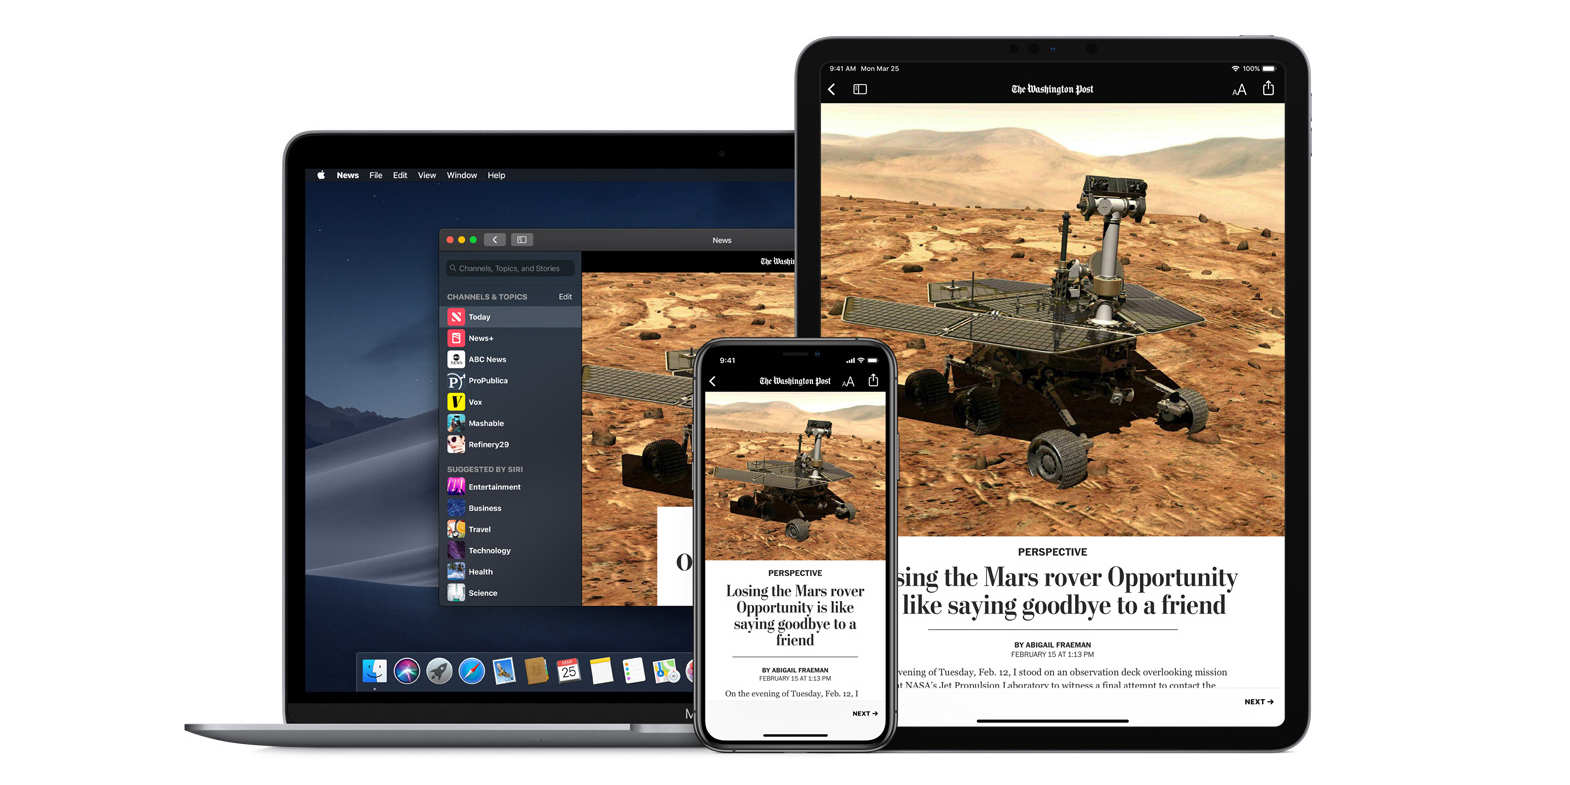 Apple News launches daily email newsletter